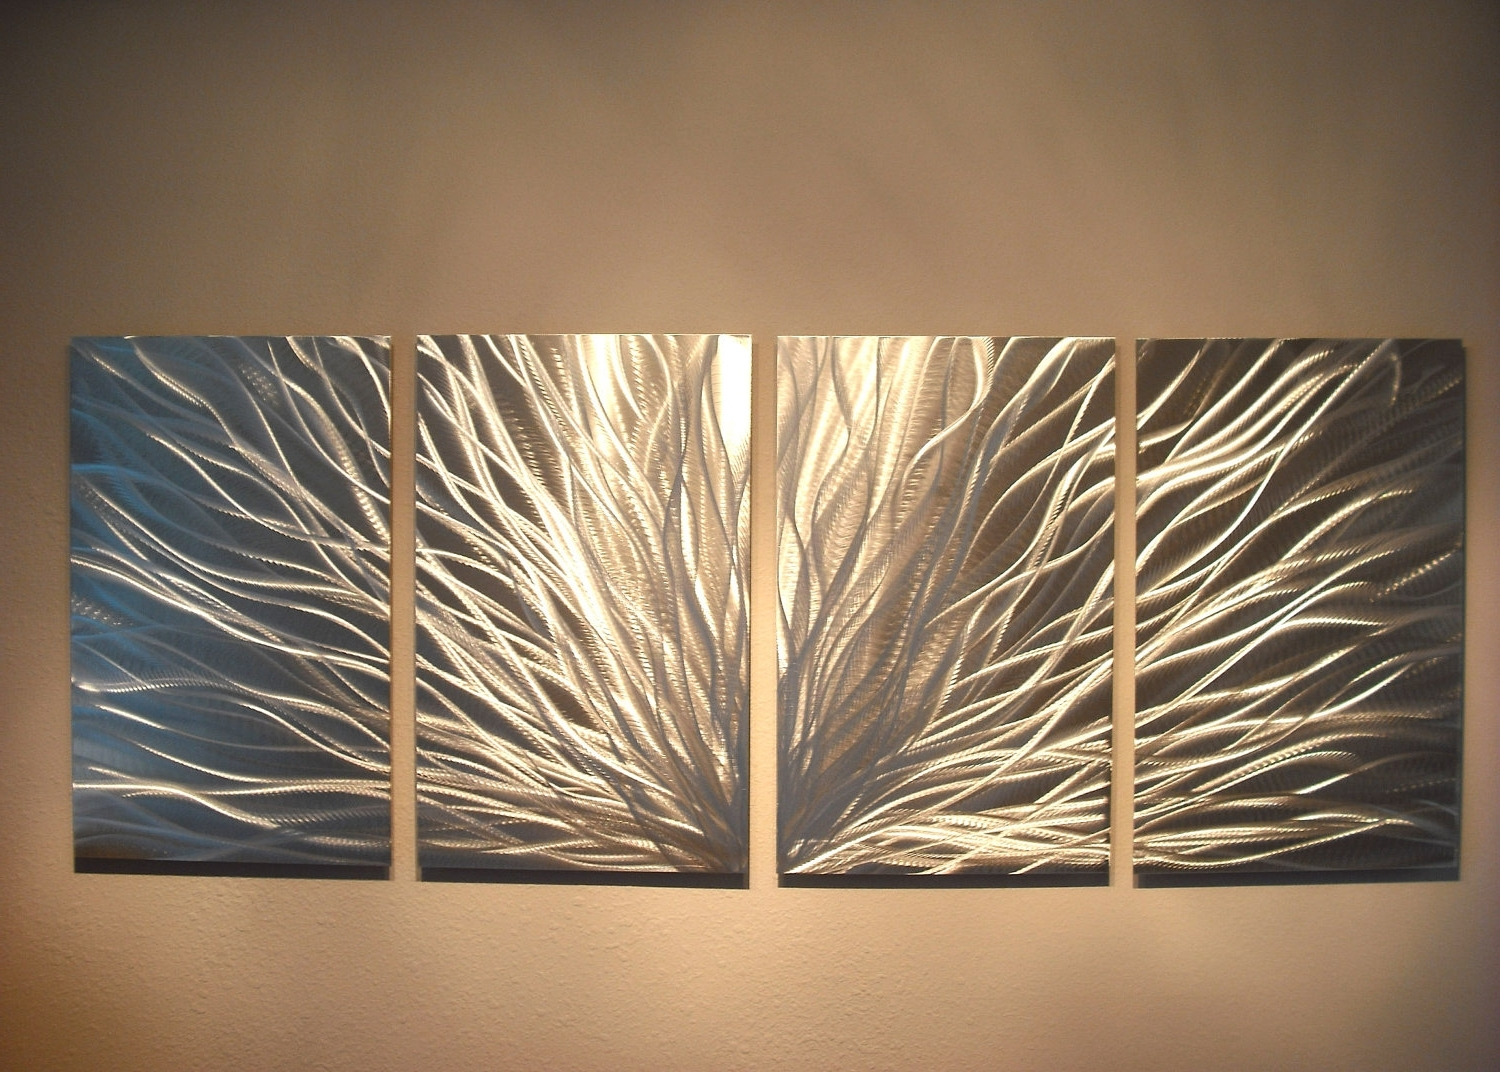 Abstract Metal Wall Art Within Recent Radiance – Abstract Metal Wall Art Contemporary Modern Decor (Gallery 7 of 15)